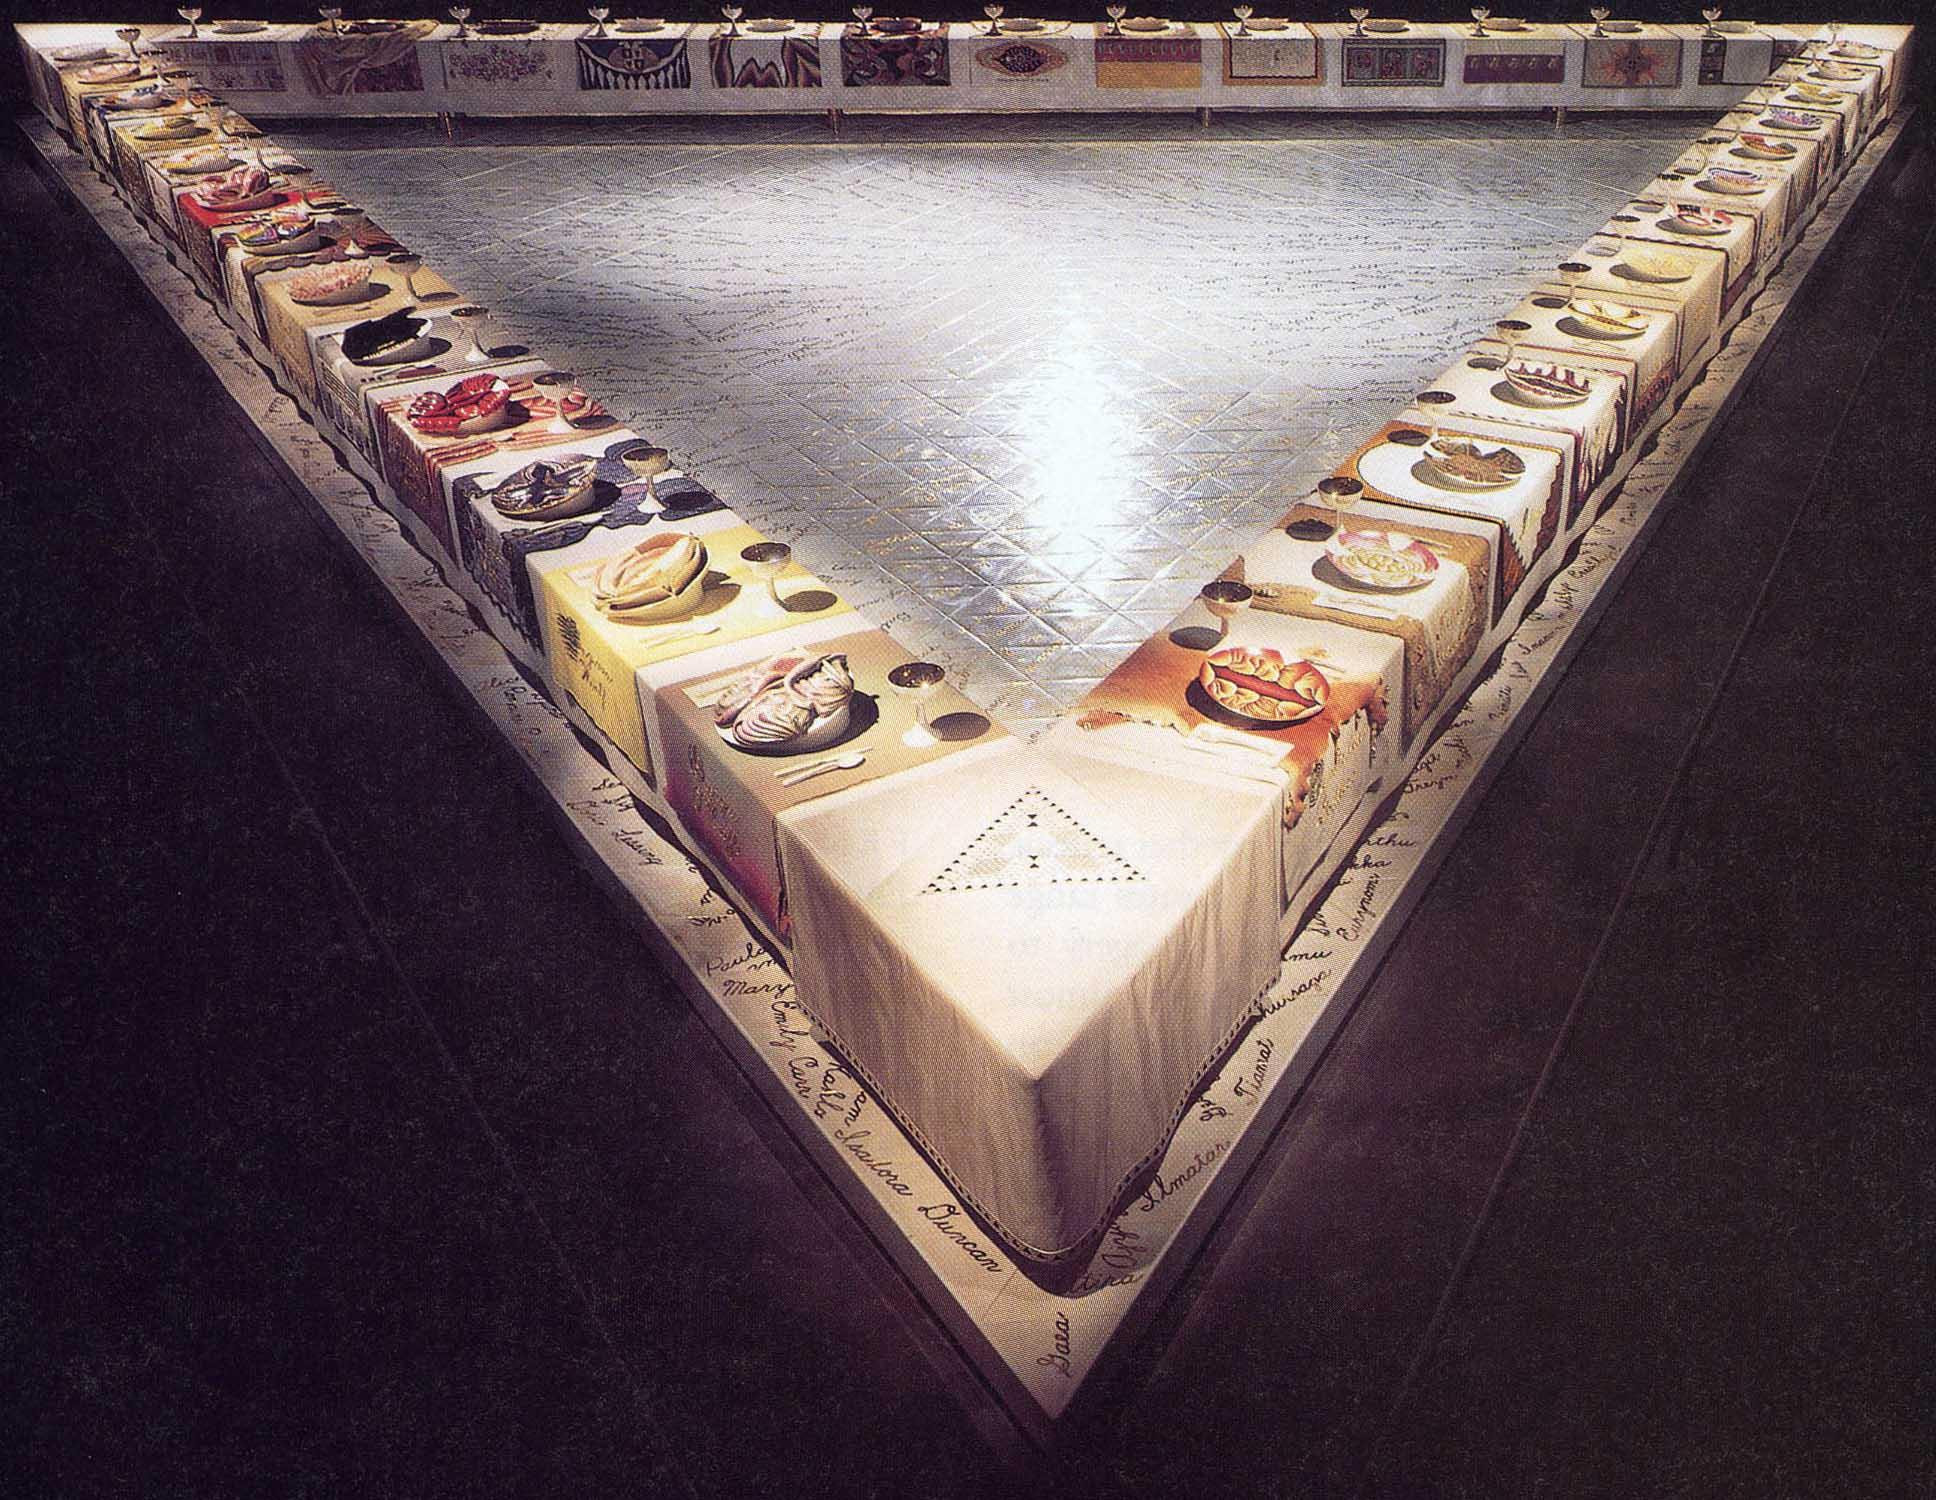 The Dinner Party Judy Chicago  Must Know Works 4 Art History Art 1023 h01 with Harvey